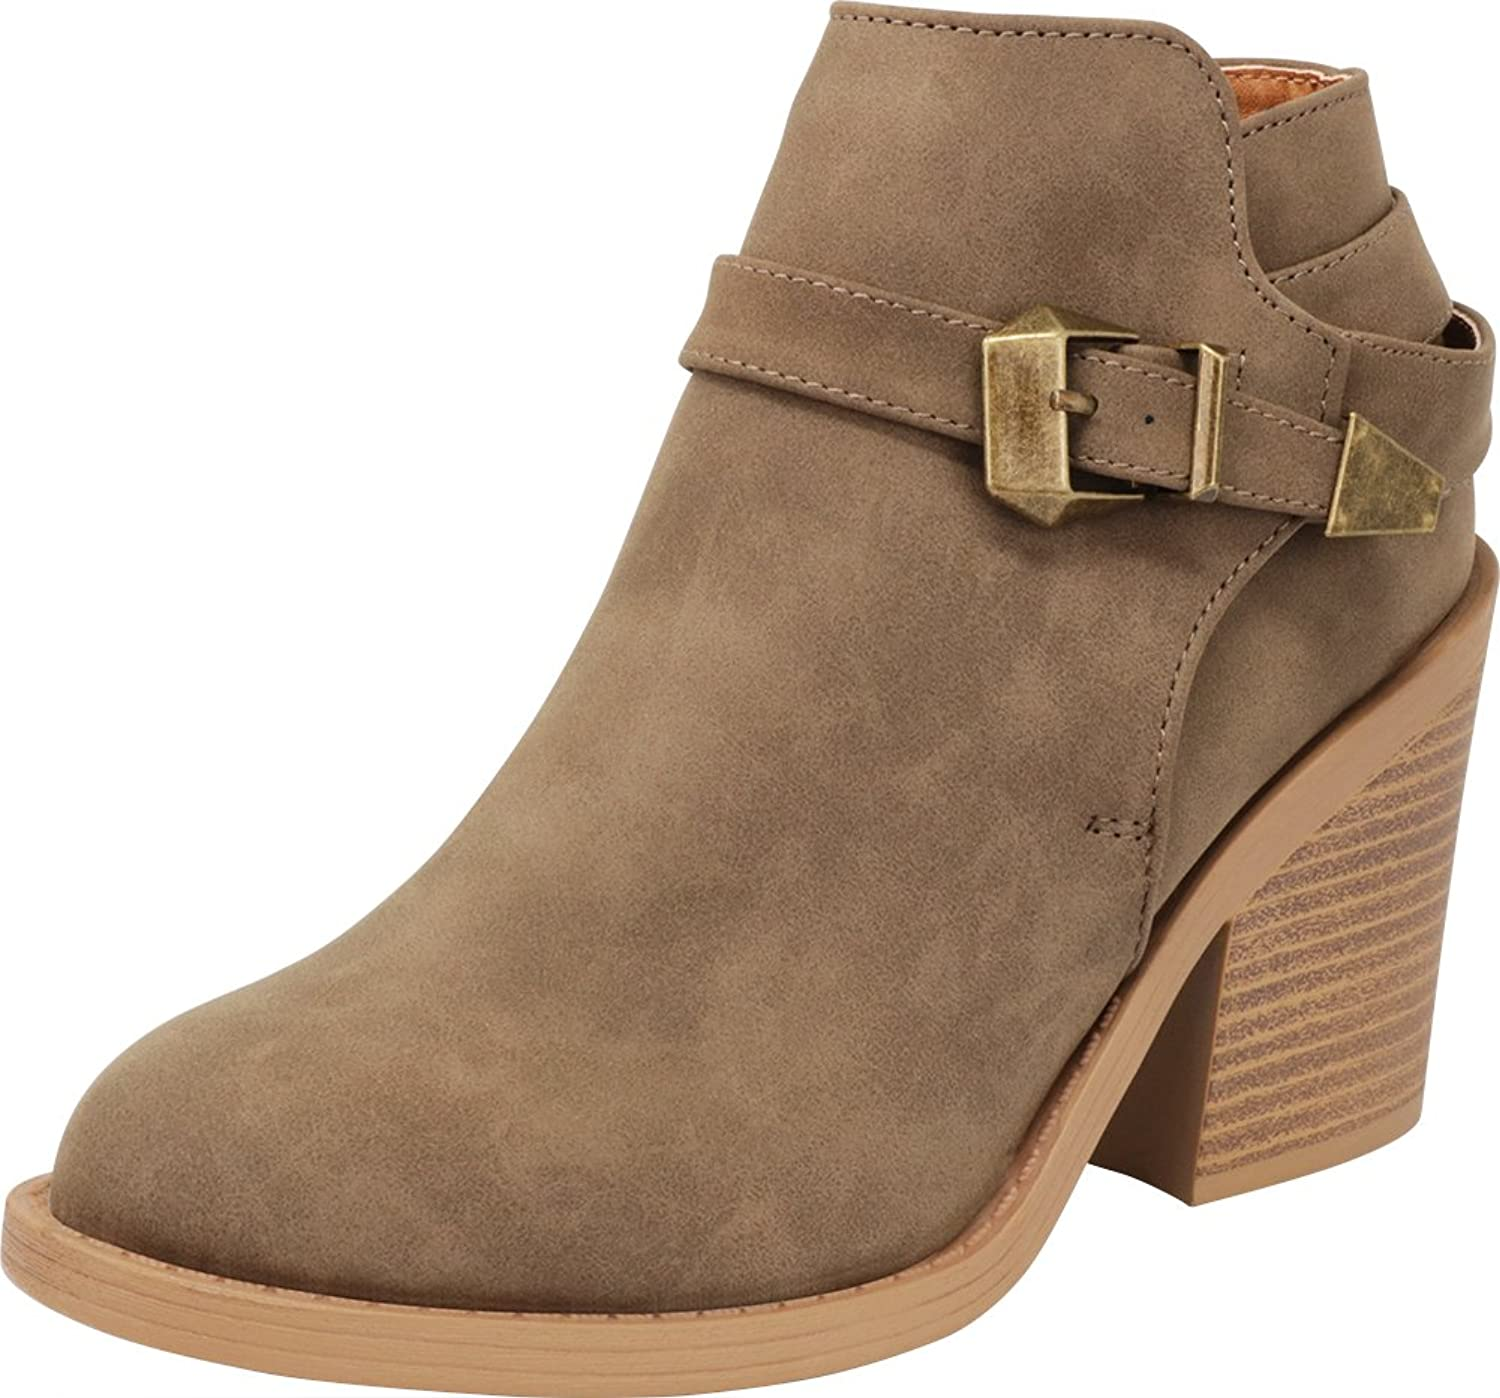 Cambridge Select Women's Closed Toe Buckled Credver Strap Chunky Stacked Block Heel Ankle Bootie